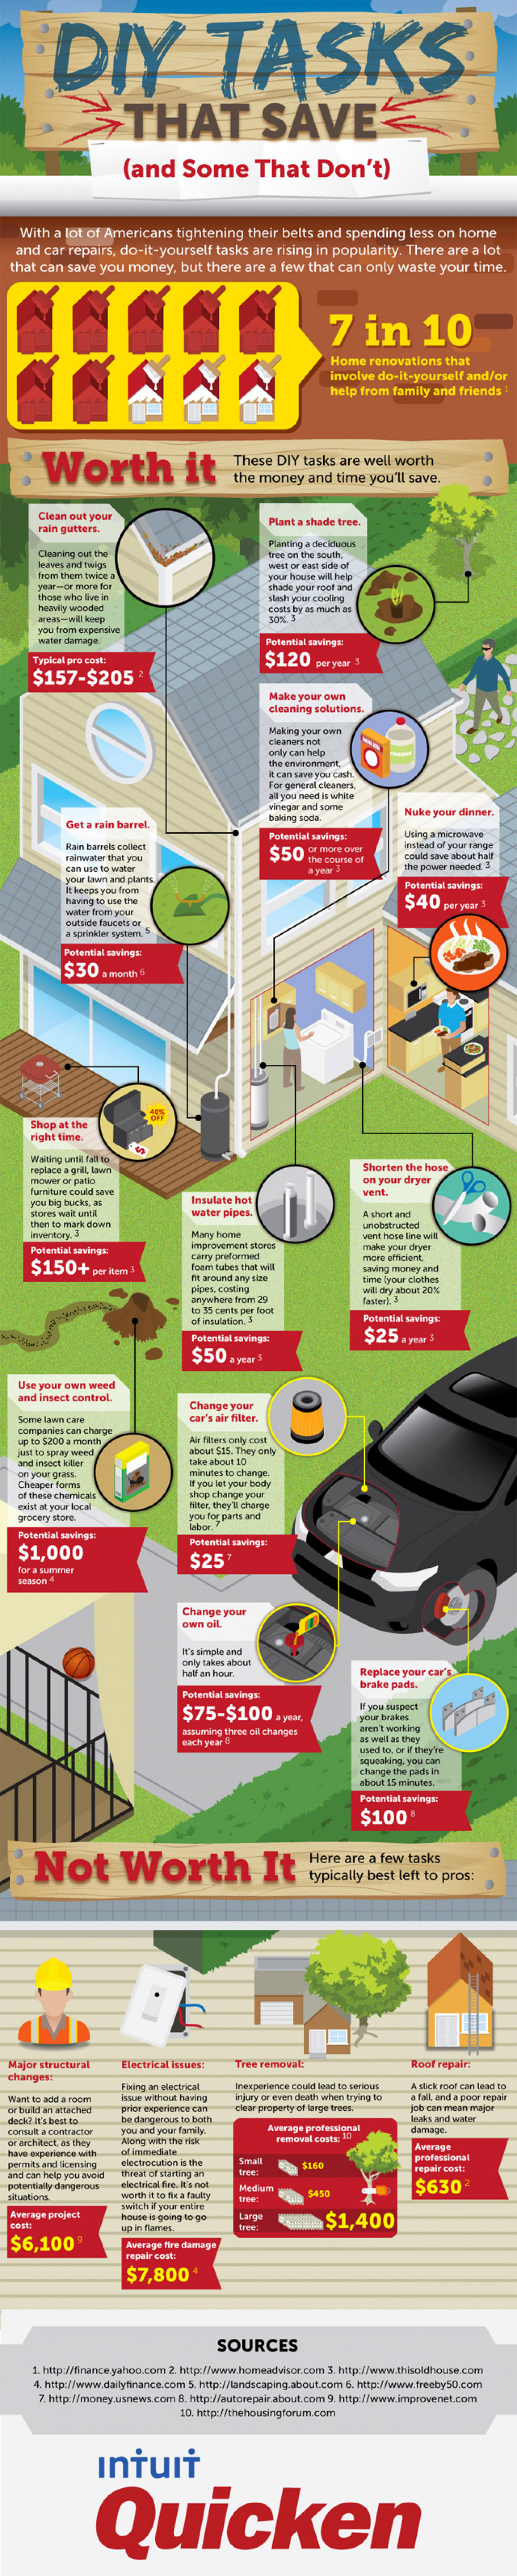 DIY Tasks that Save: And Some that Don't Infographic